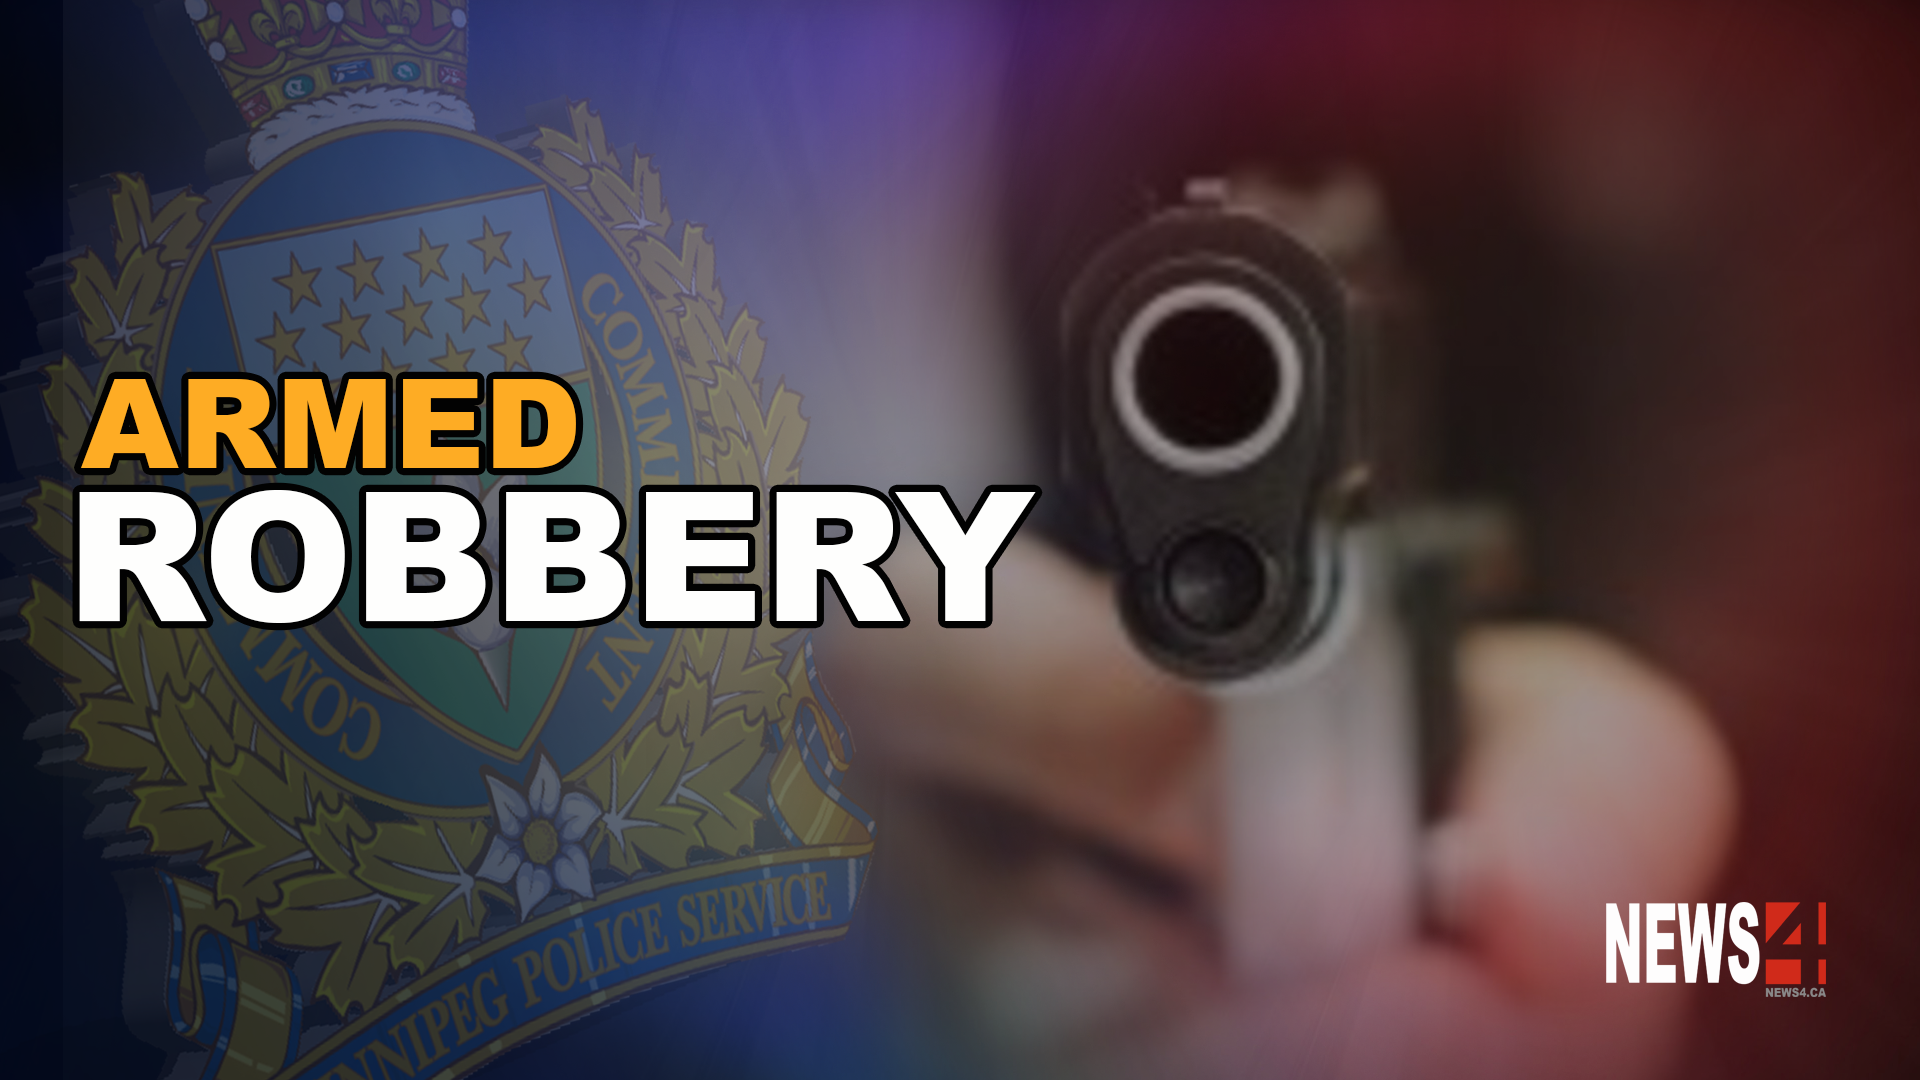 ATTEMPTED ROBBERY NETS 21 YEAR OLD A HAND FULL OF CHARGES ...